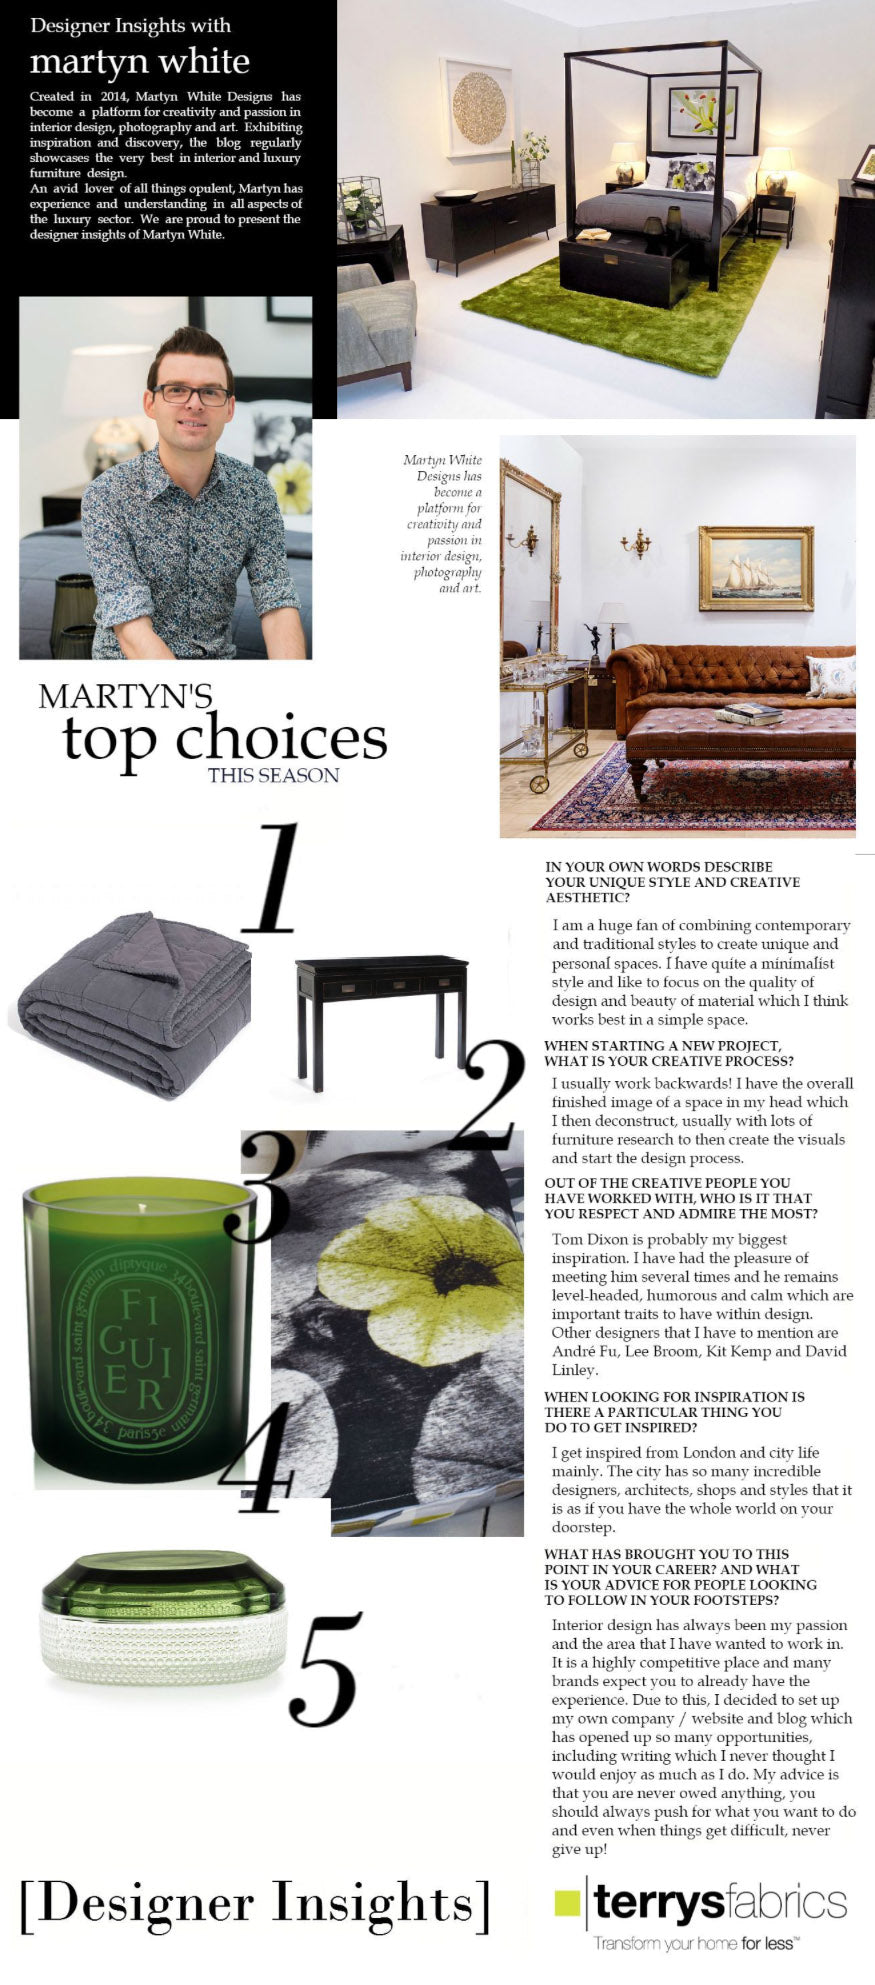 Terrys Fabrics Designer Insight with Martyn White